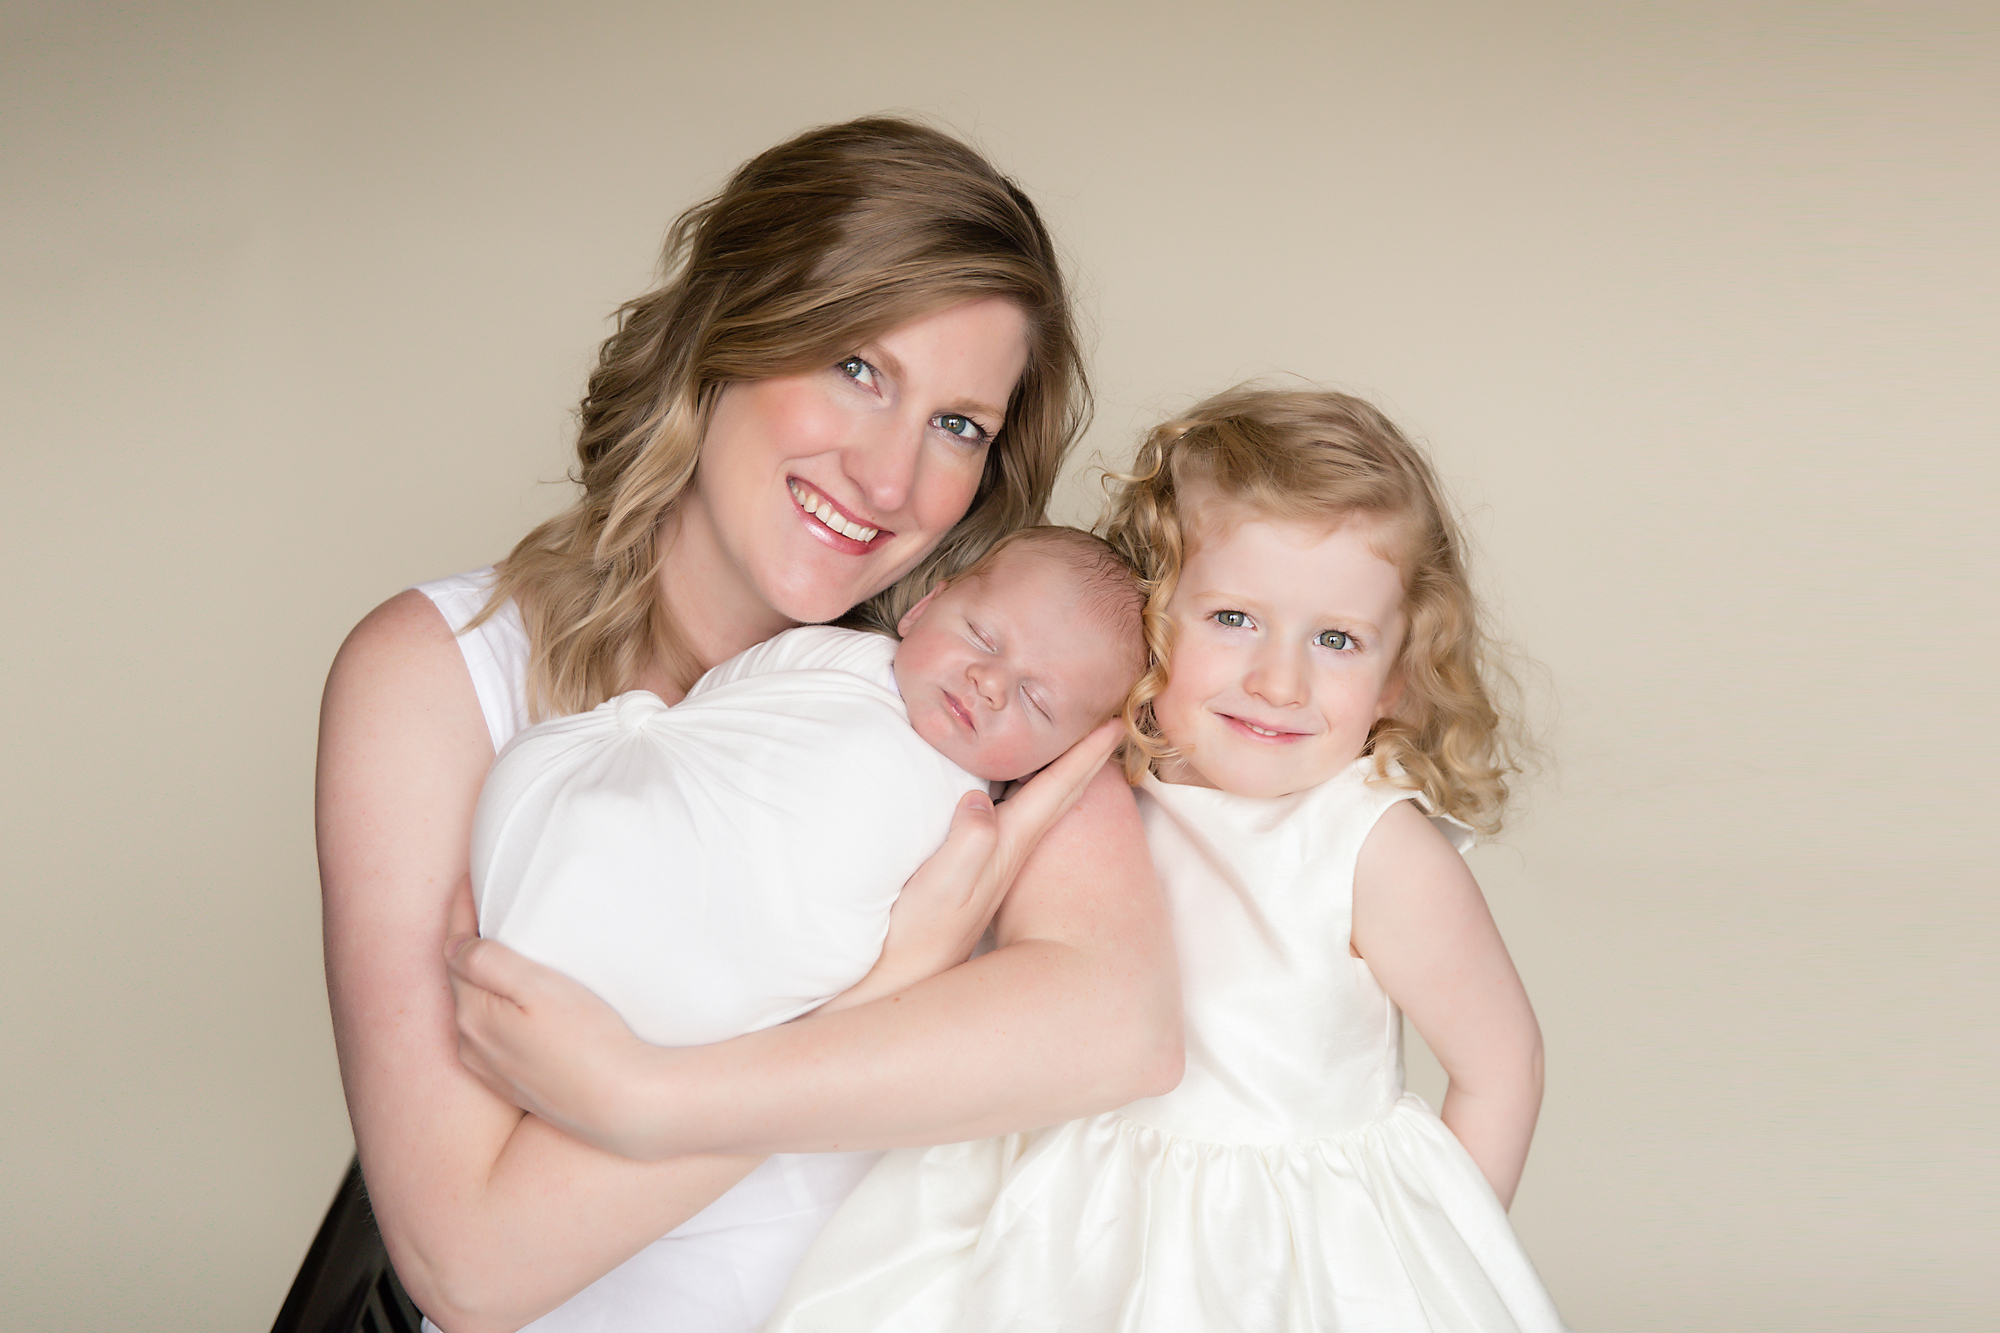 Mother and her two children - newborn baby boy and a 4 year old daughter. Calgary Newborn and Baby photographer - Milashka Photography.